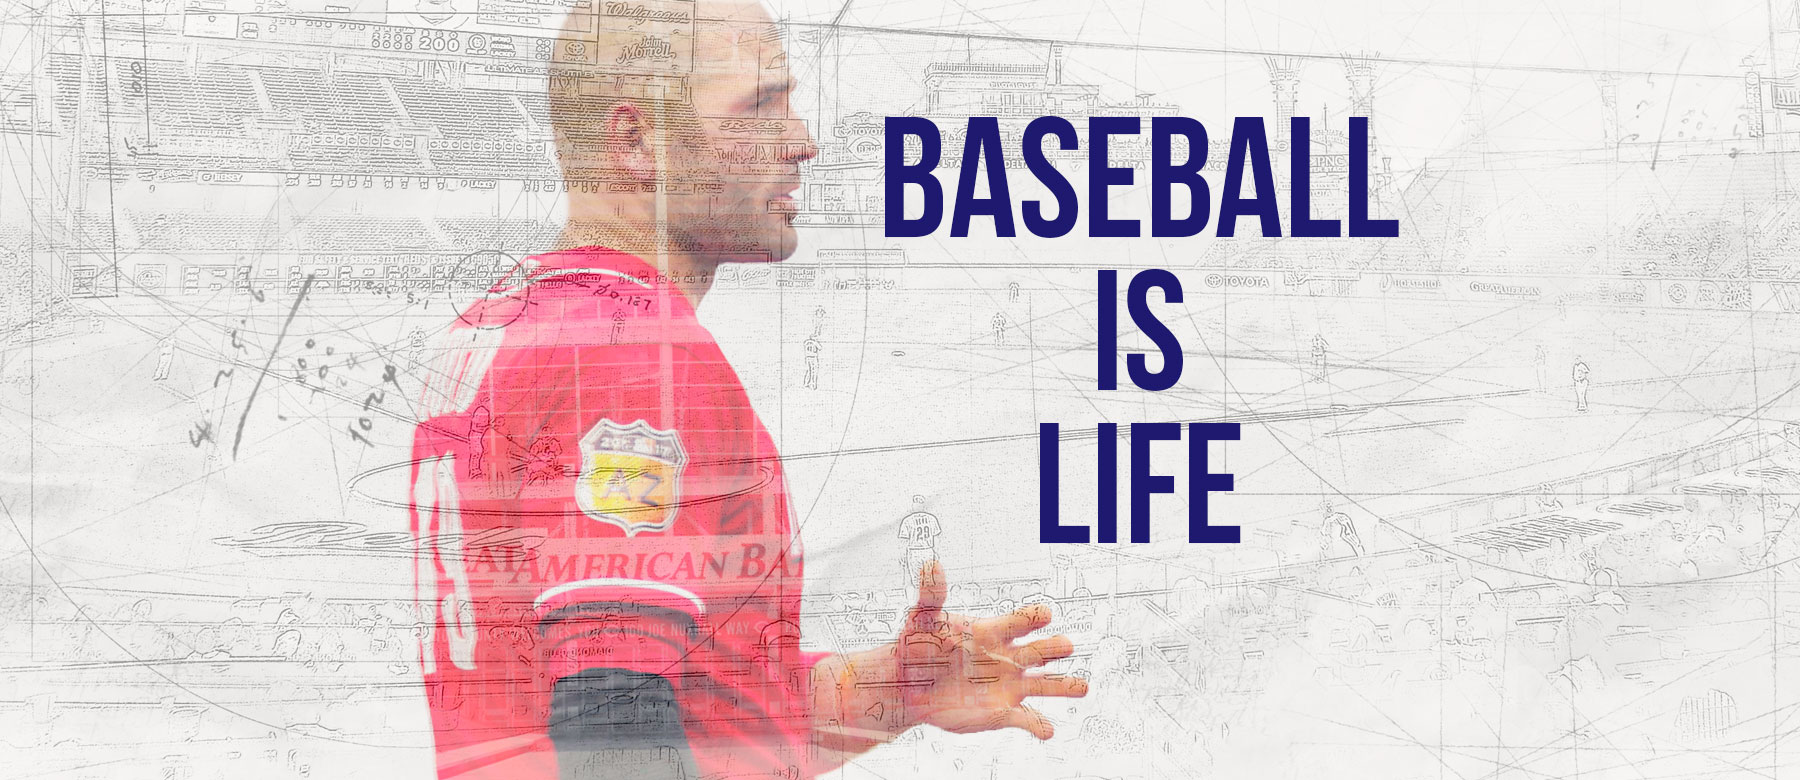 Baseball Is Life: The New Lawn